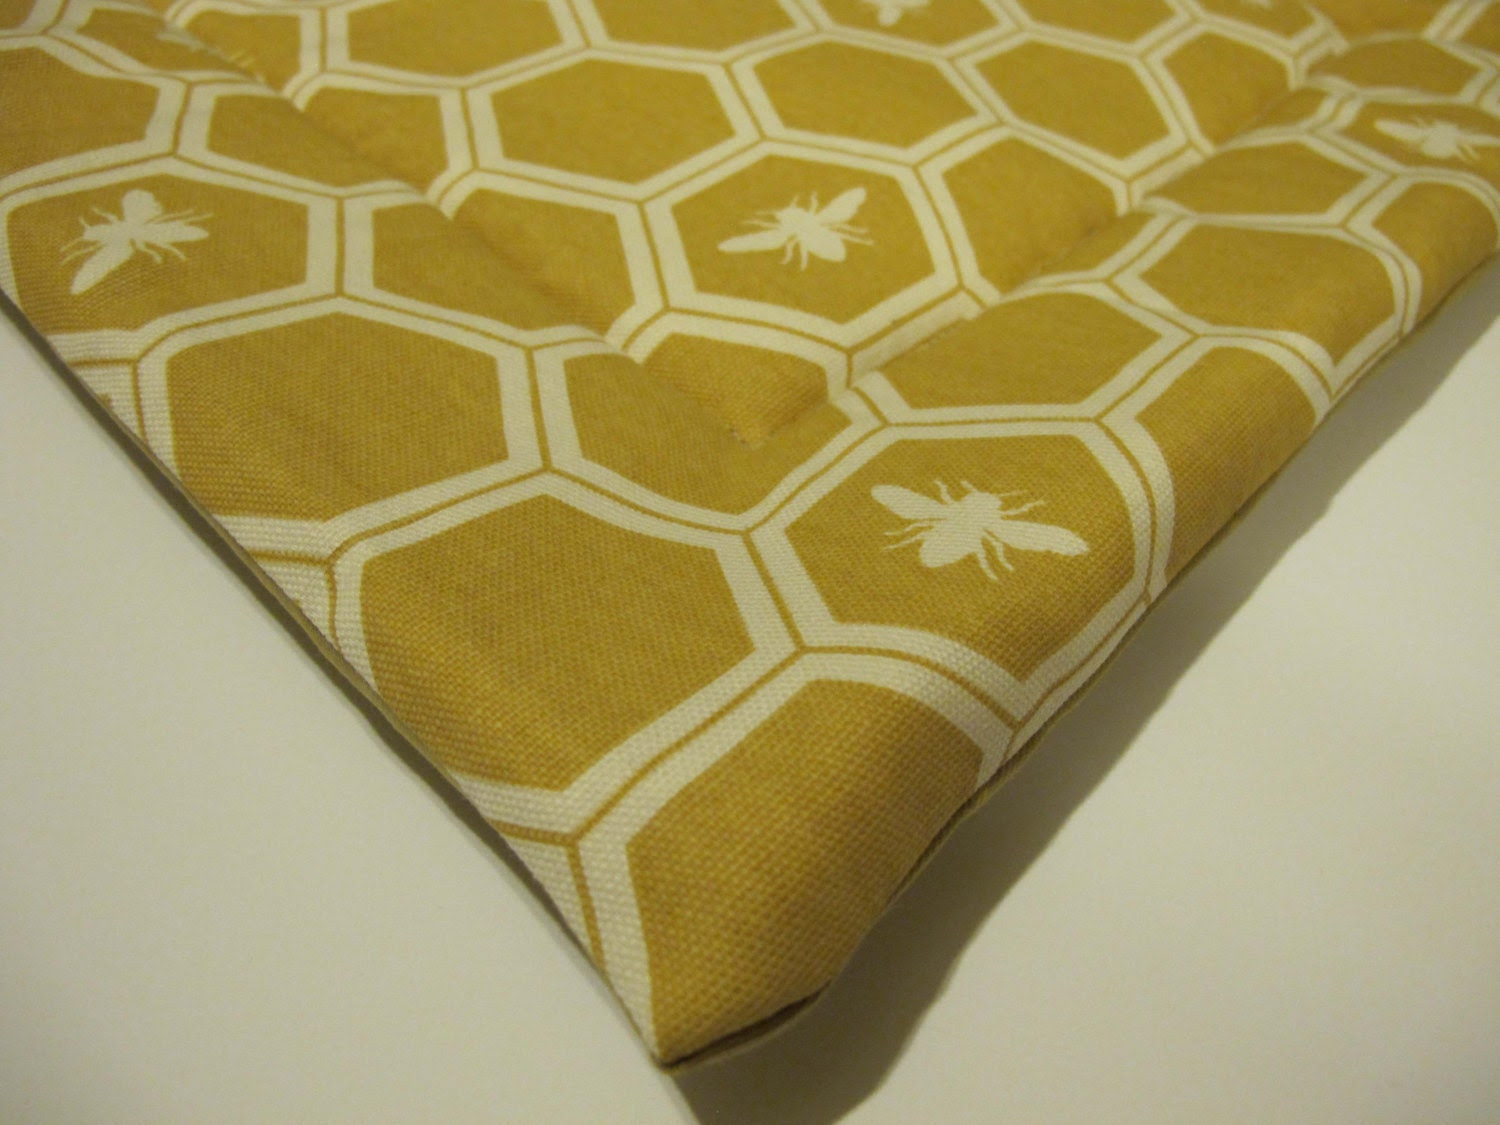 SALE Organic Small Washable Pet Mat / Bed for Cats or Small Dogs -Honey Bees